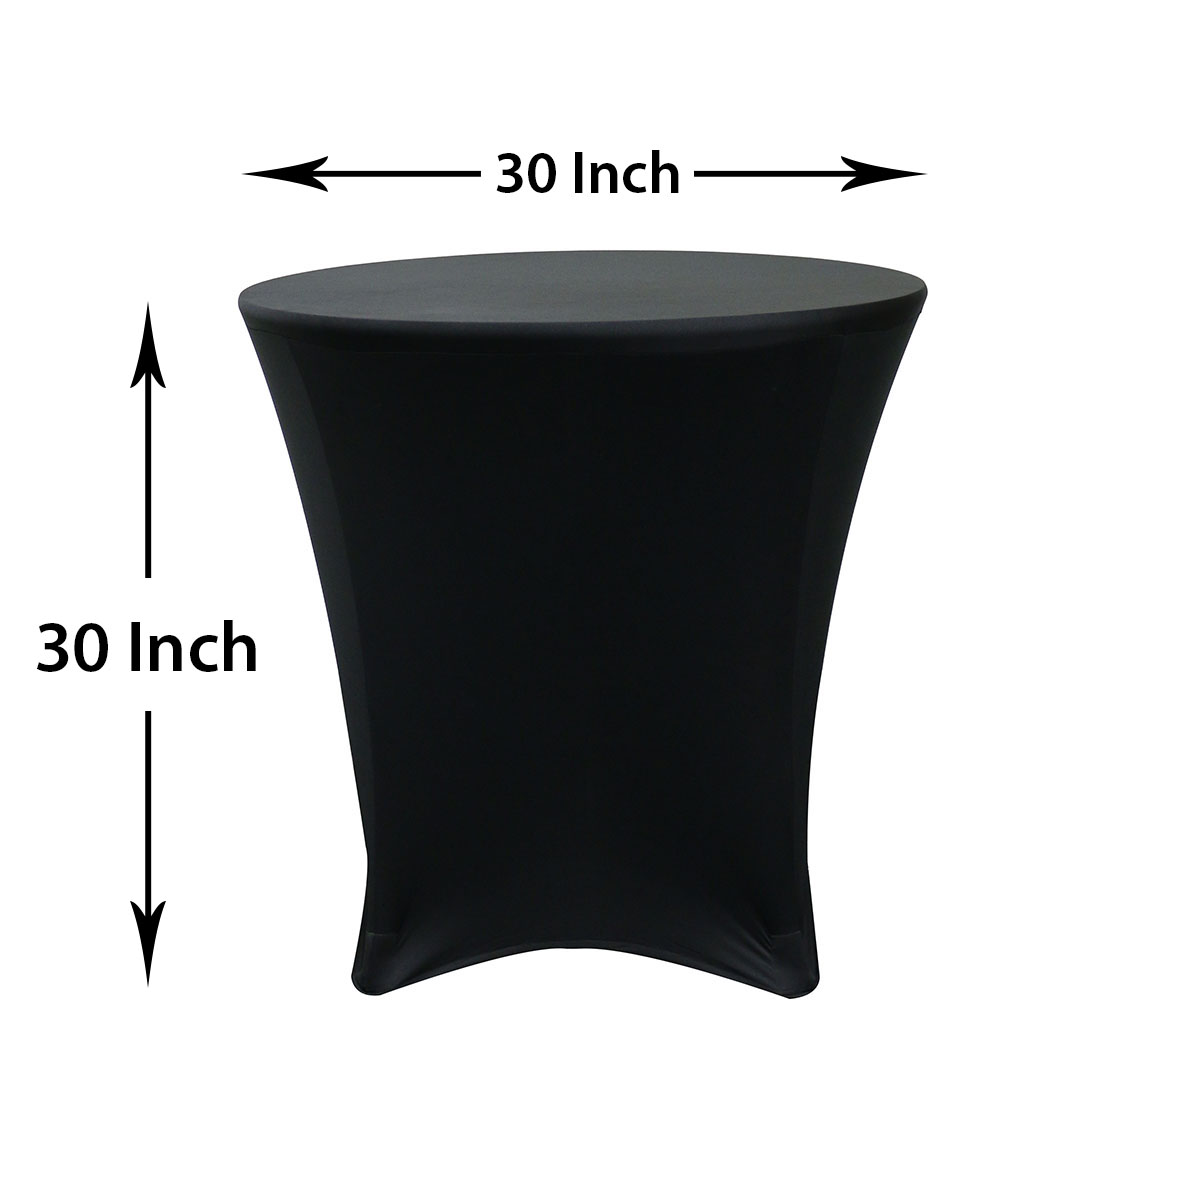 30 X 30 Inch Round Spandex Highboy Cocktail Table Covers